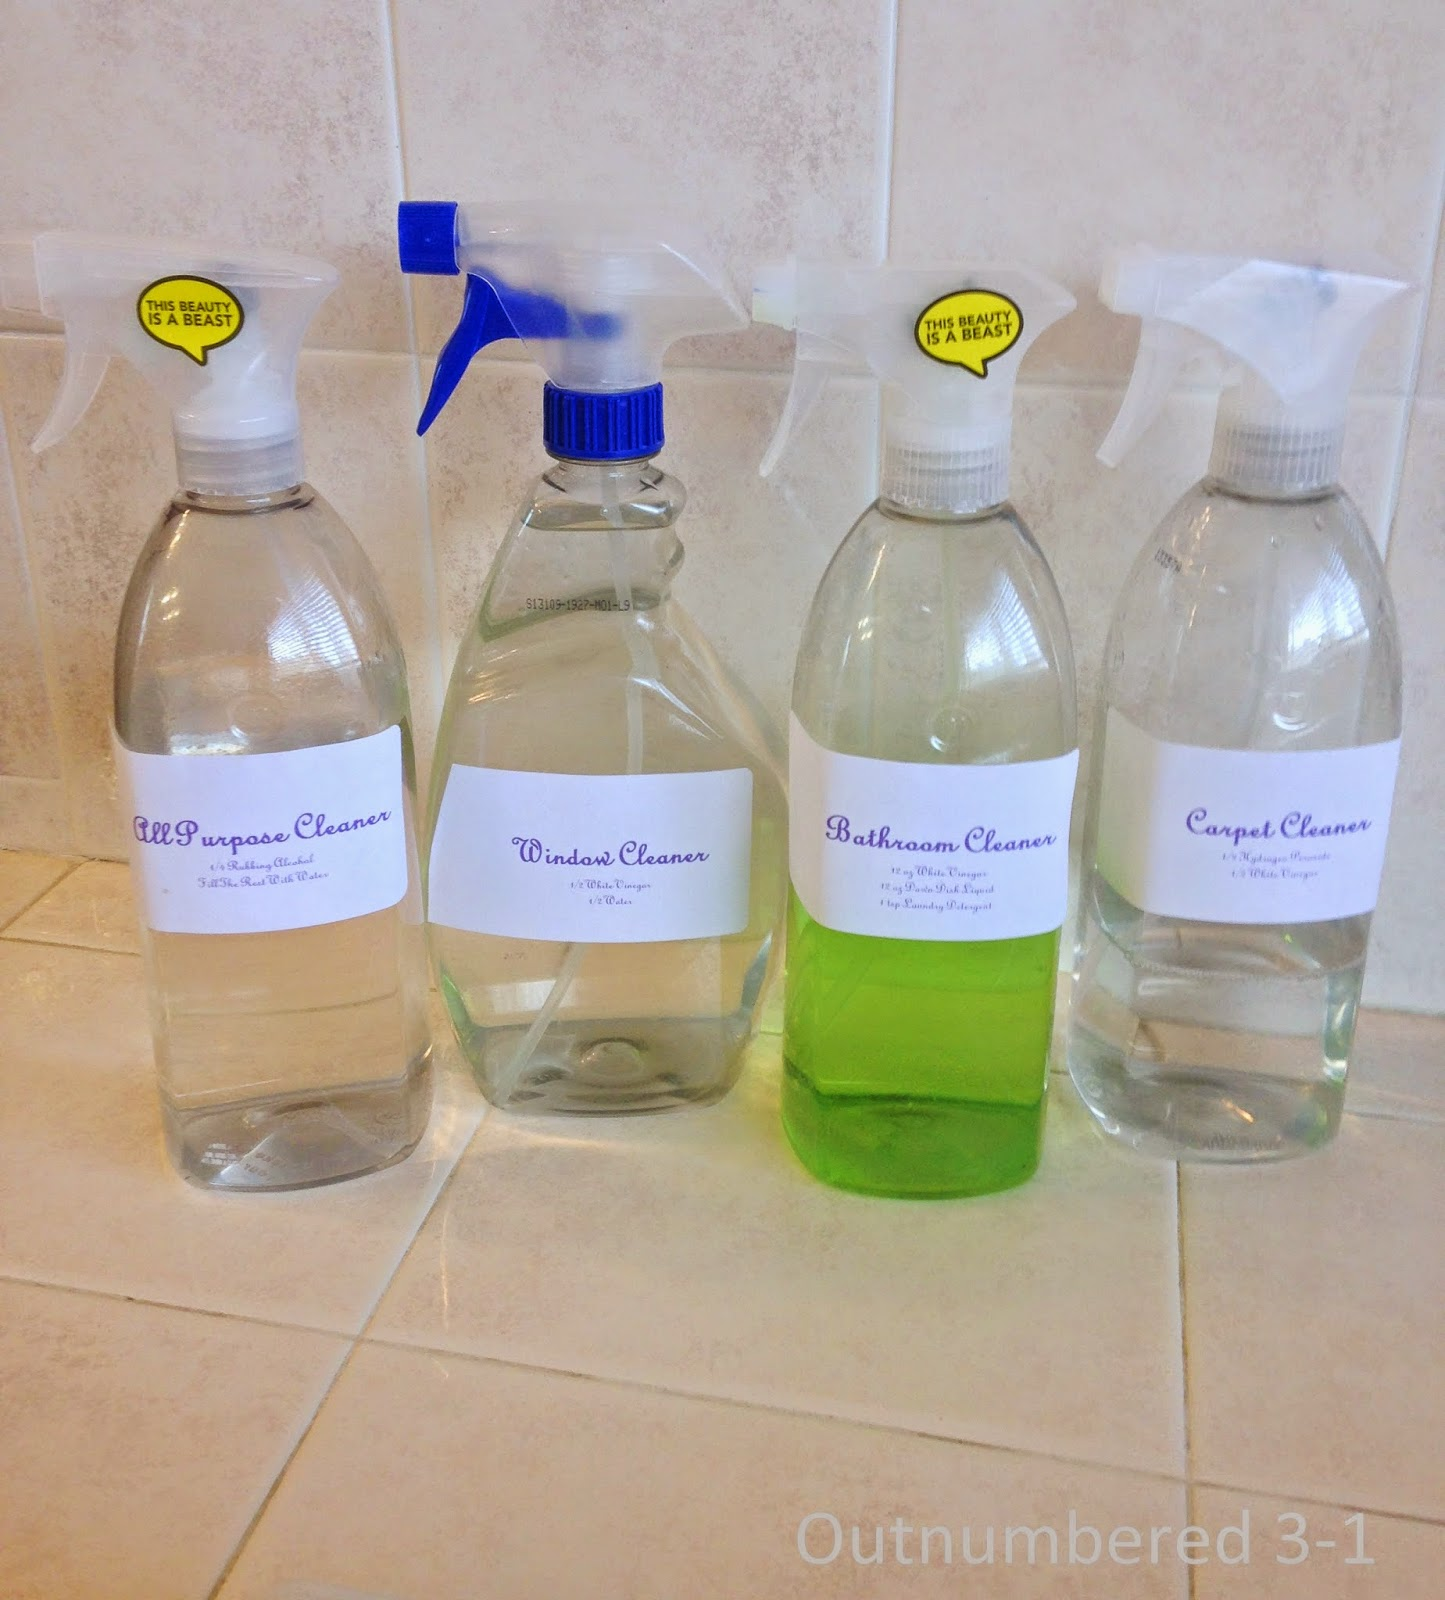 DIY, House Hold Cleaners, Bathroom Cleaner, Window Cleaner, Carpet Cleaner